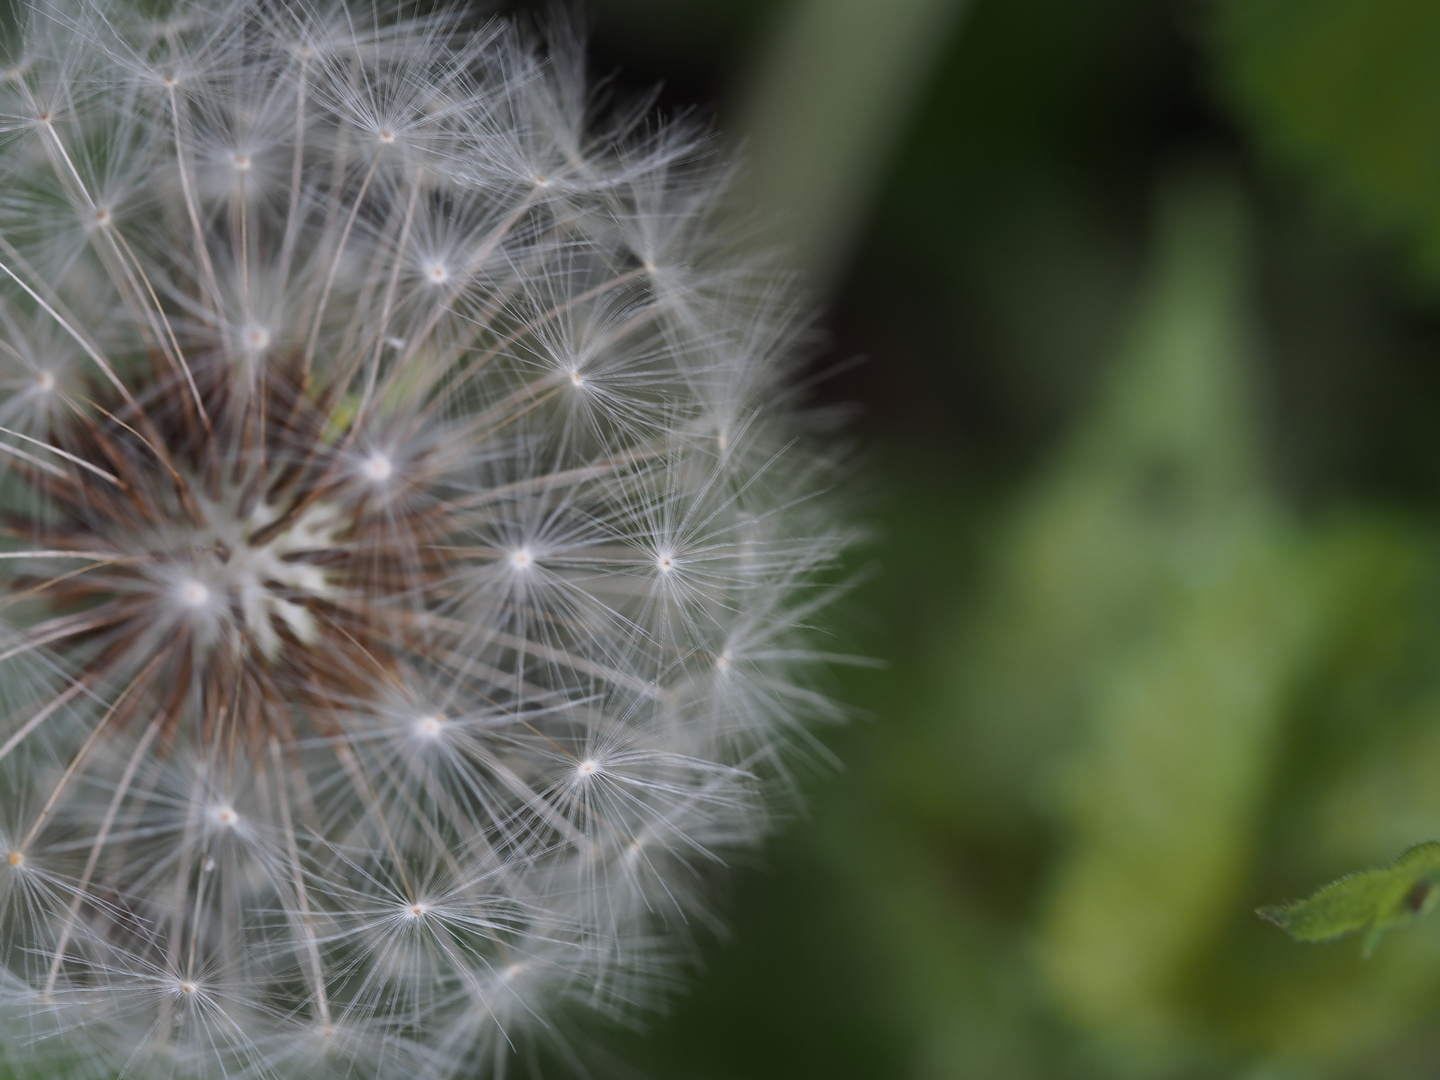 Dandelion, make a wish